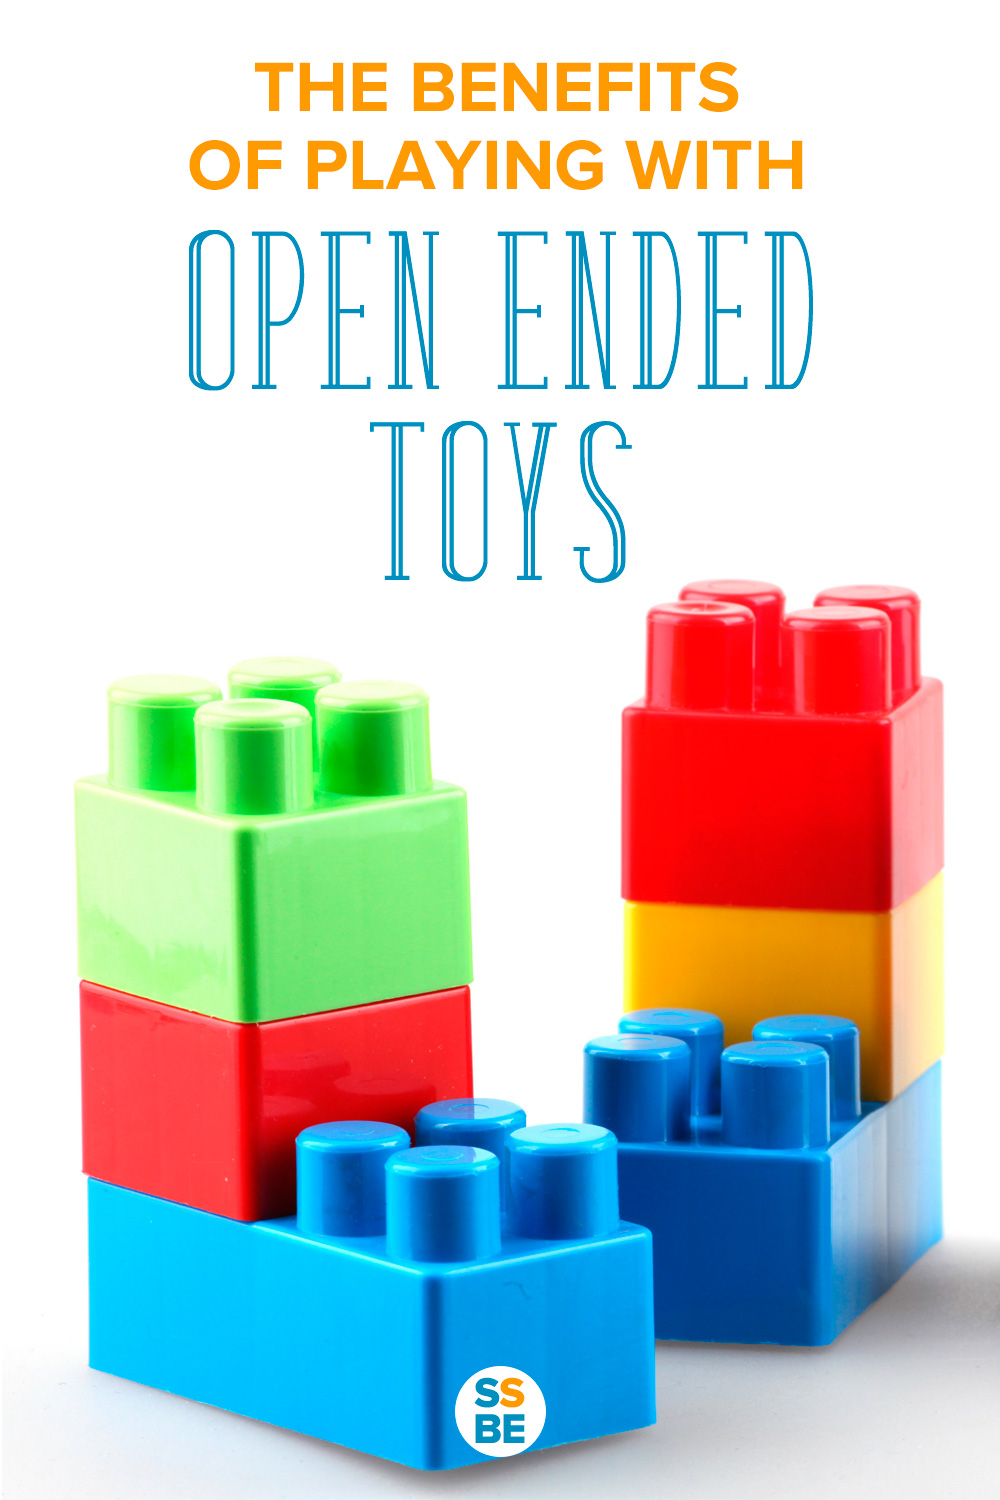 The benefits of open-ended play are many. Discover how to encourage open-ended play as a way to boost your child's creativity and imagination.